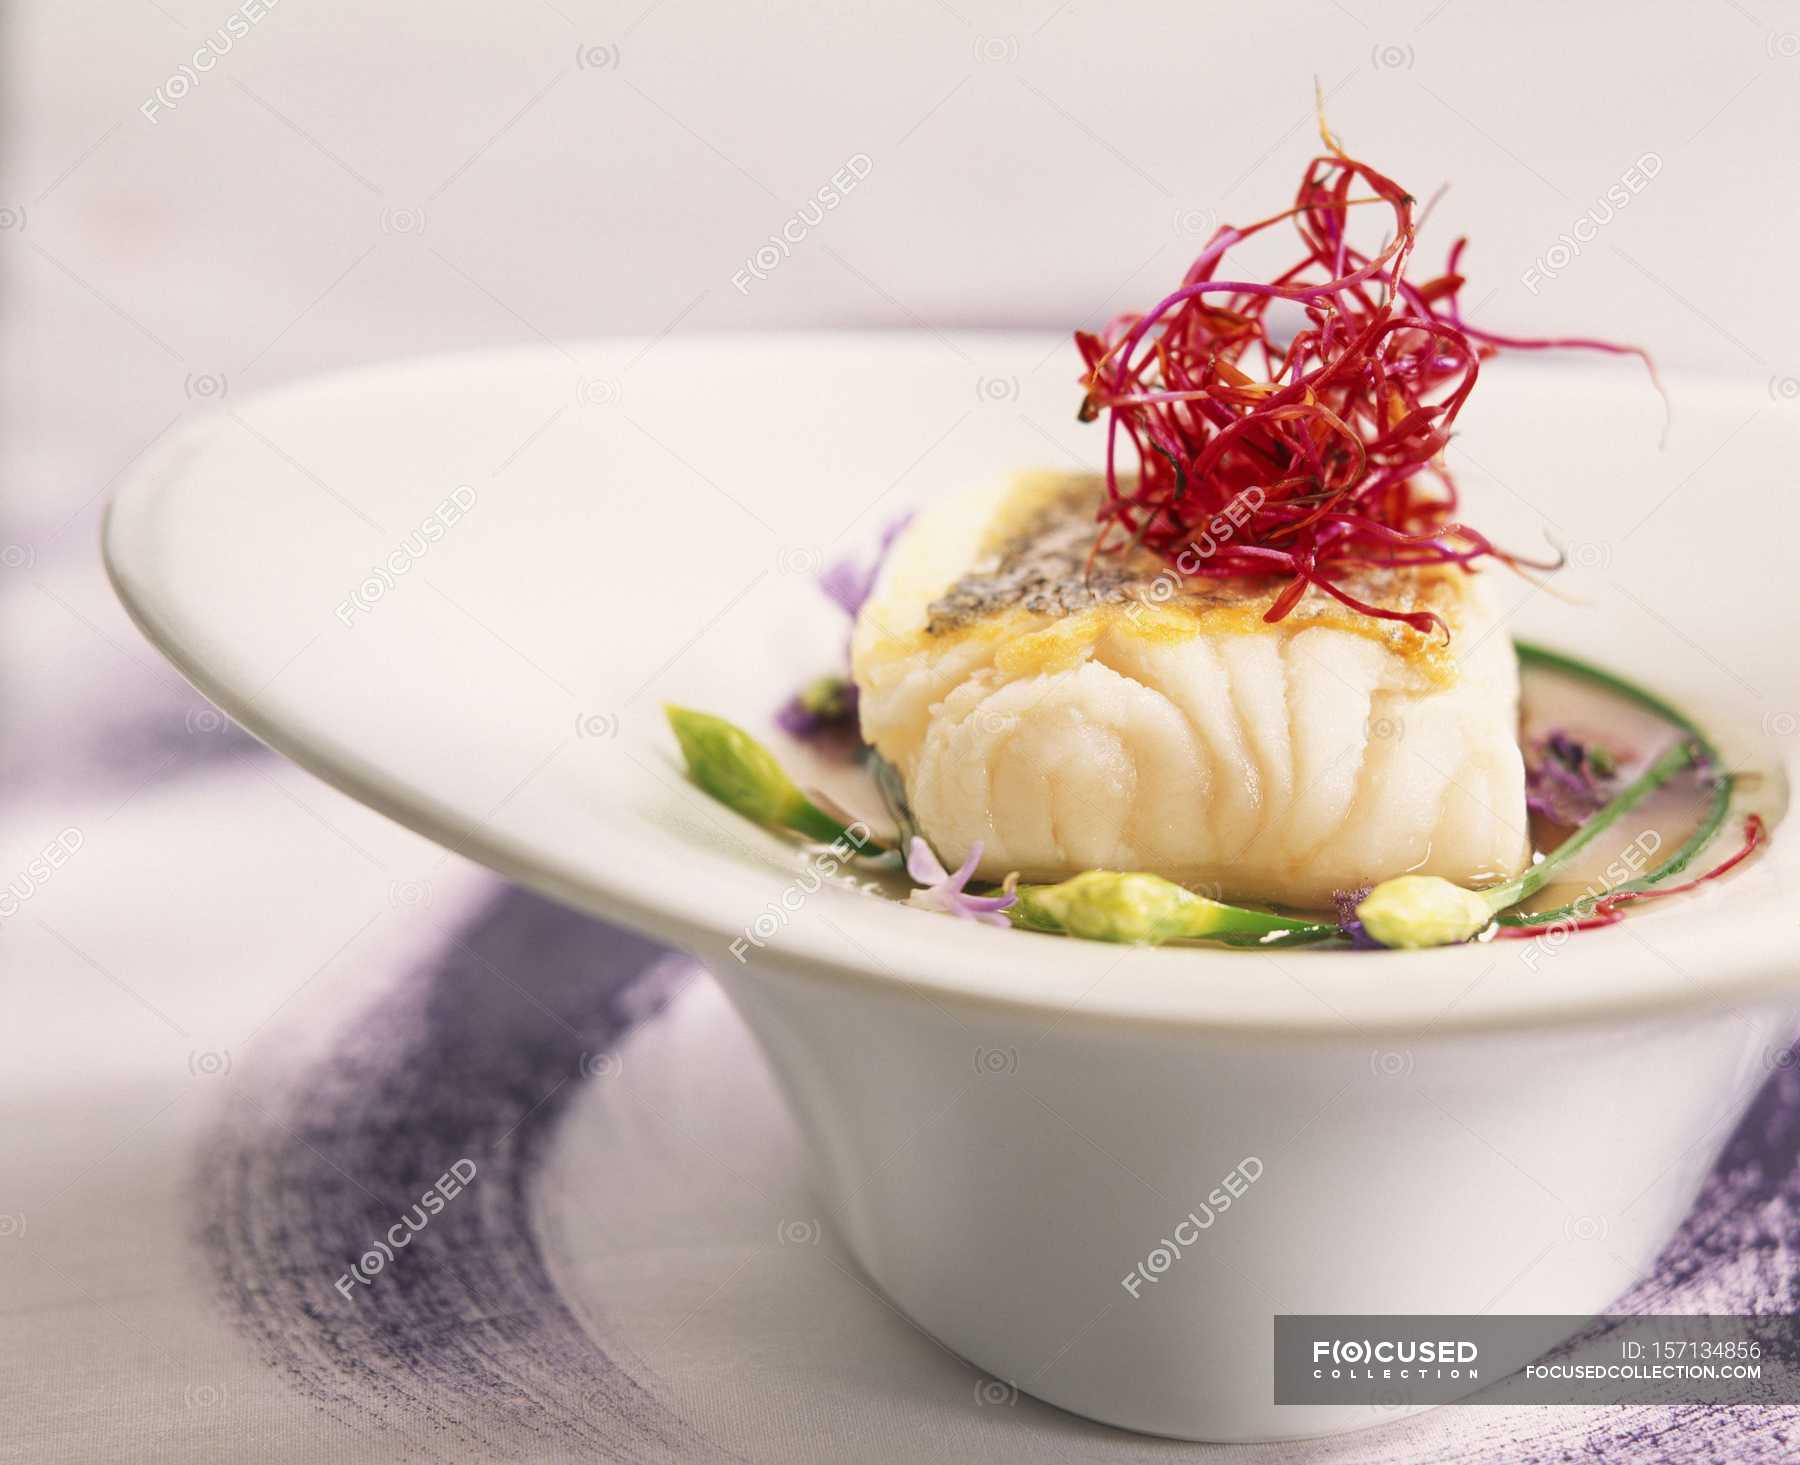 Cuisine Mauve Cod With Mauve Soup And Chinese Garlic In White Bowl Color